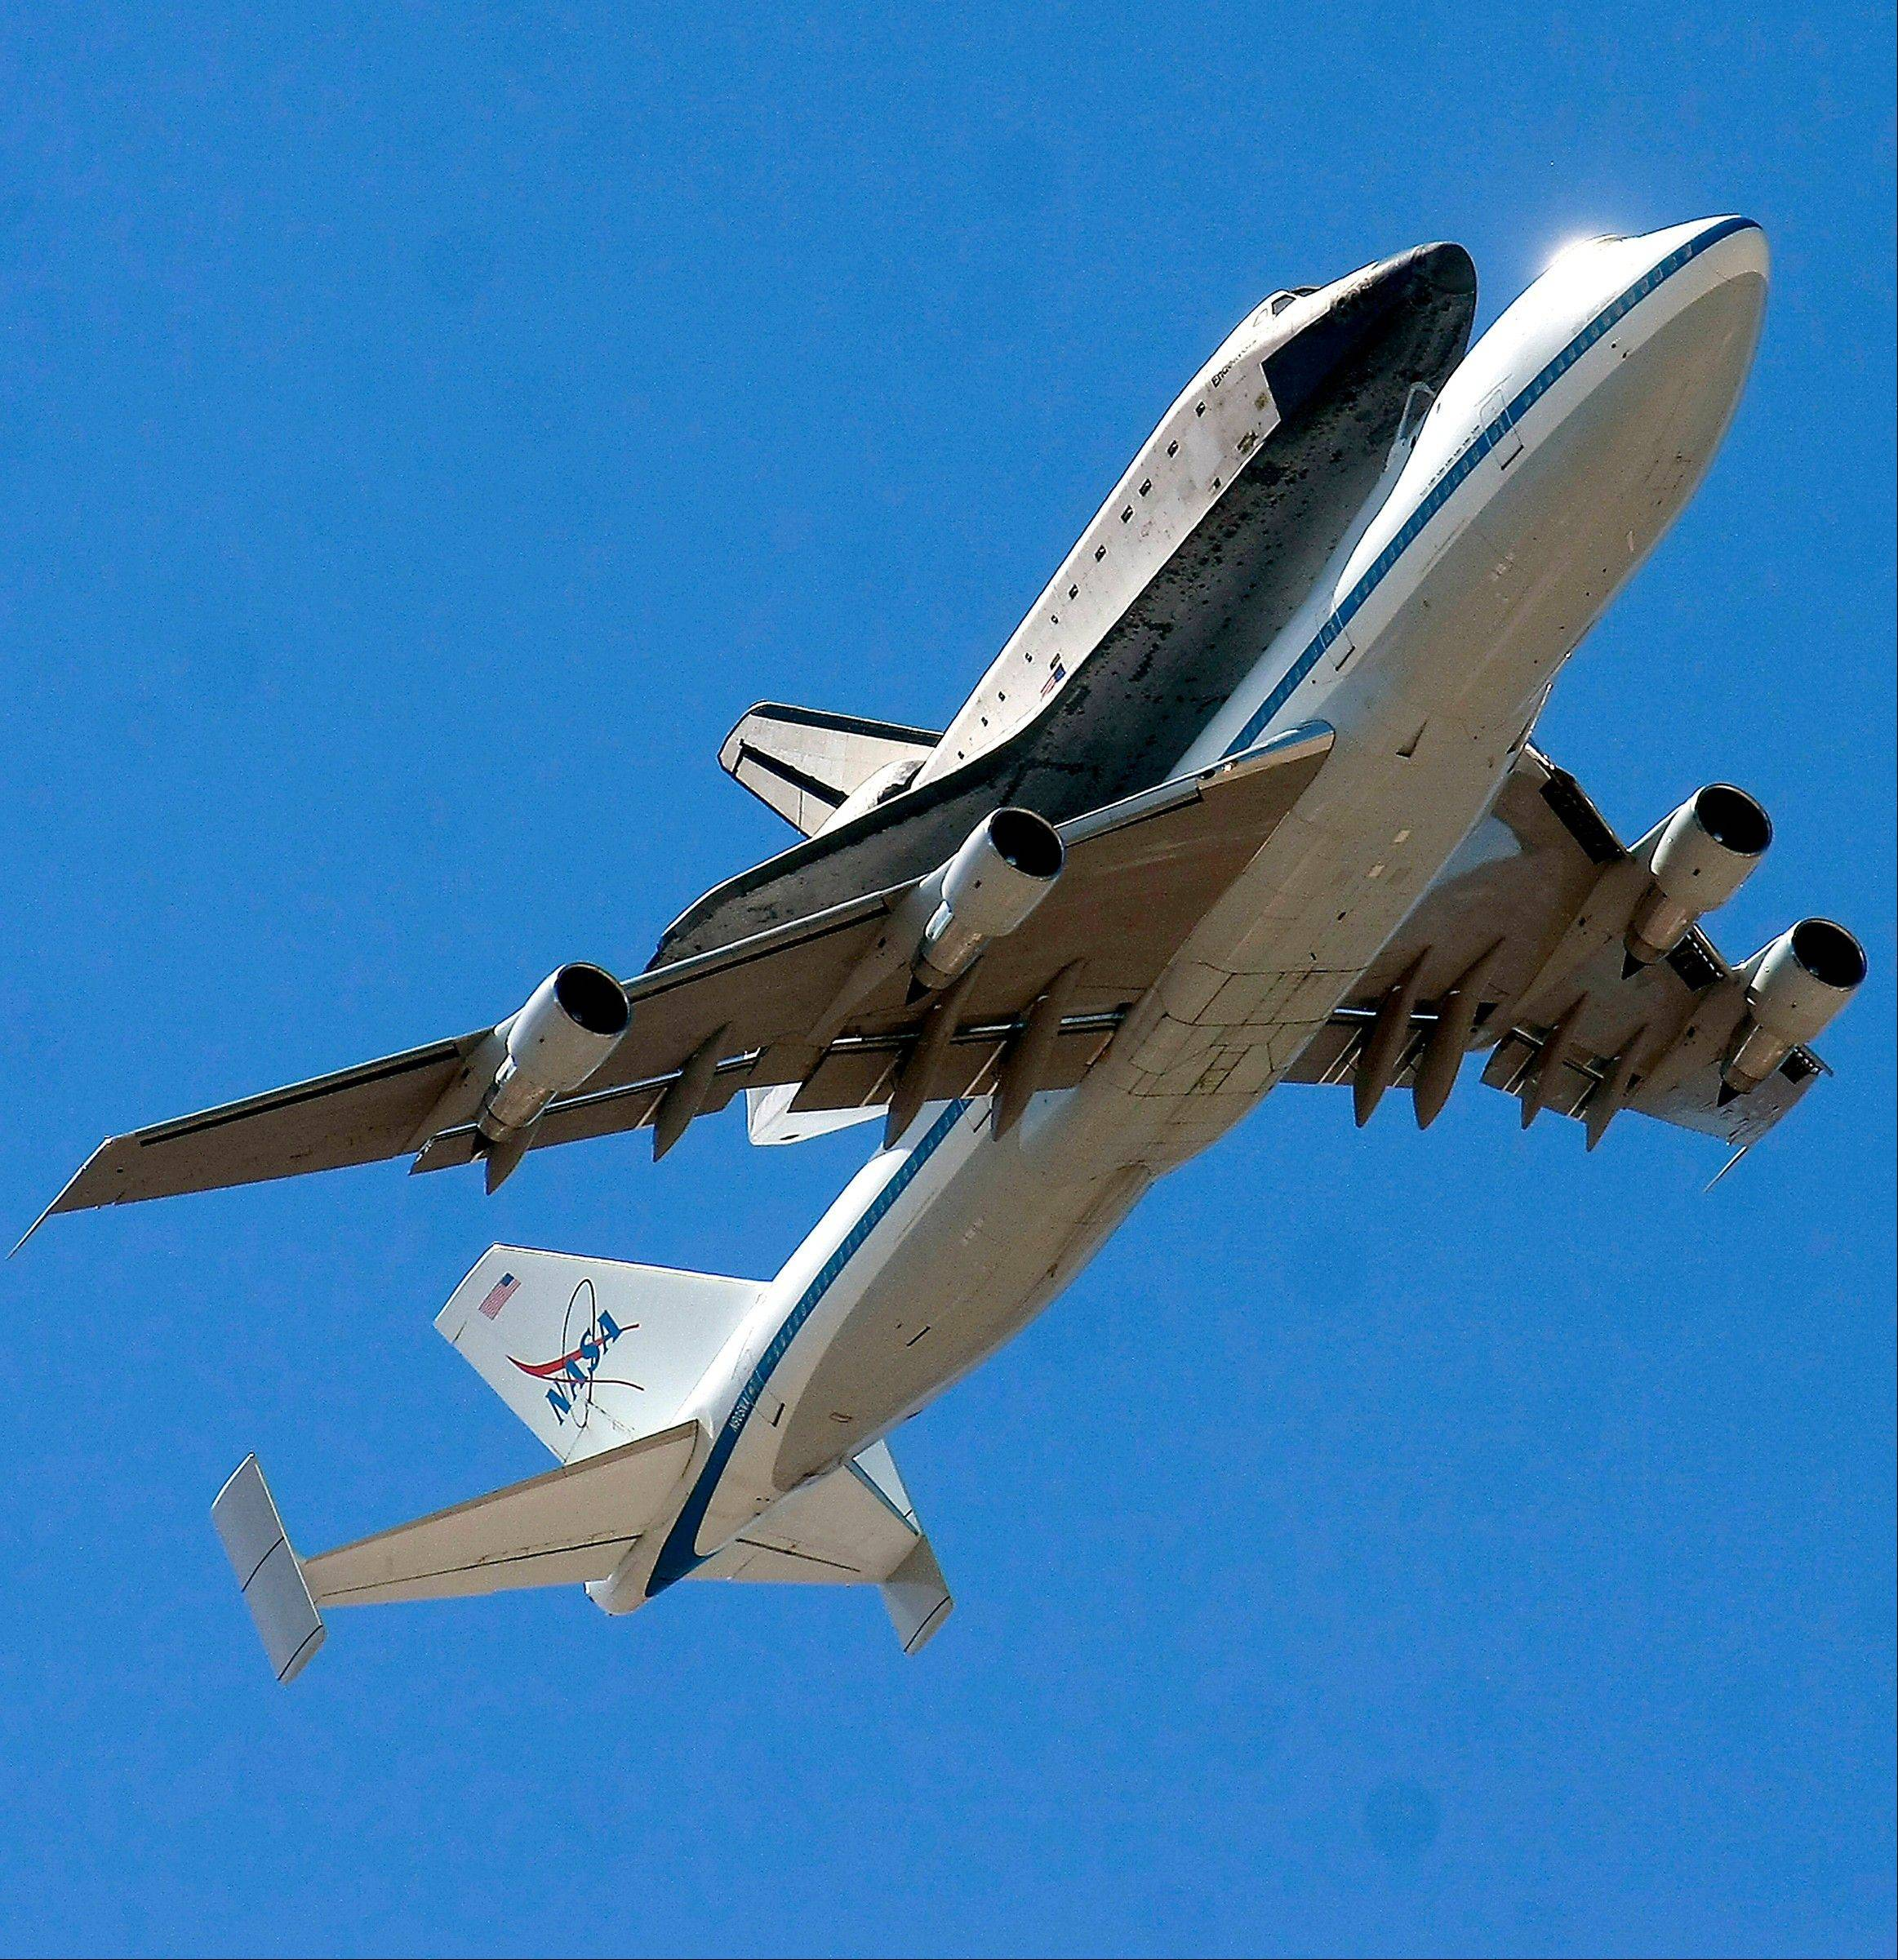 The retired shuttle Endeavour piggybacks a modified Boeing 747 Shuttle Aircraft Carrier during its final flight Thursday, Sept. 20, 2012 as the pair soar over White Sands Missile Range east of Las Cruces, N.M, before reaching their landing destination in California.